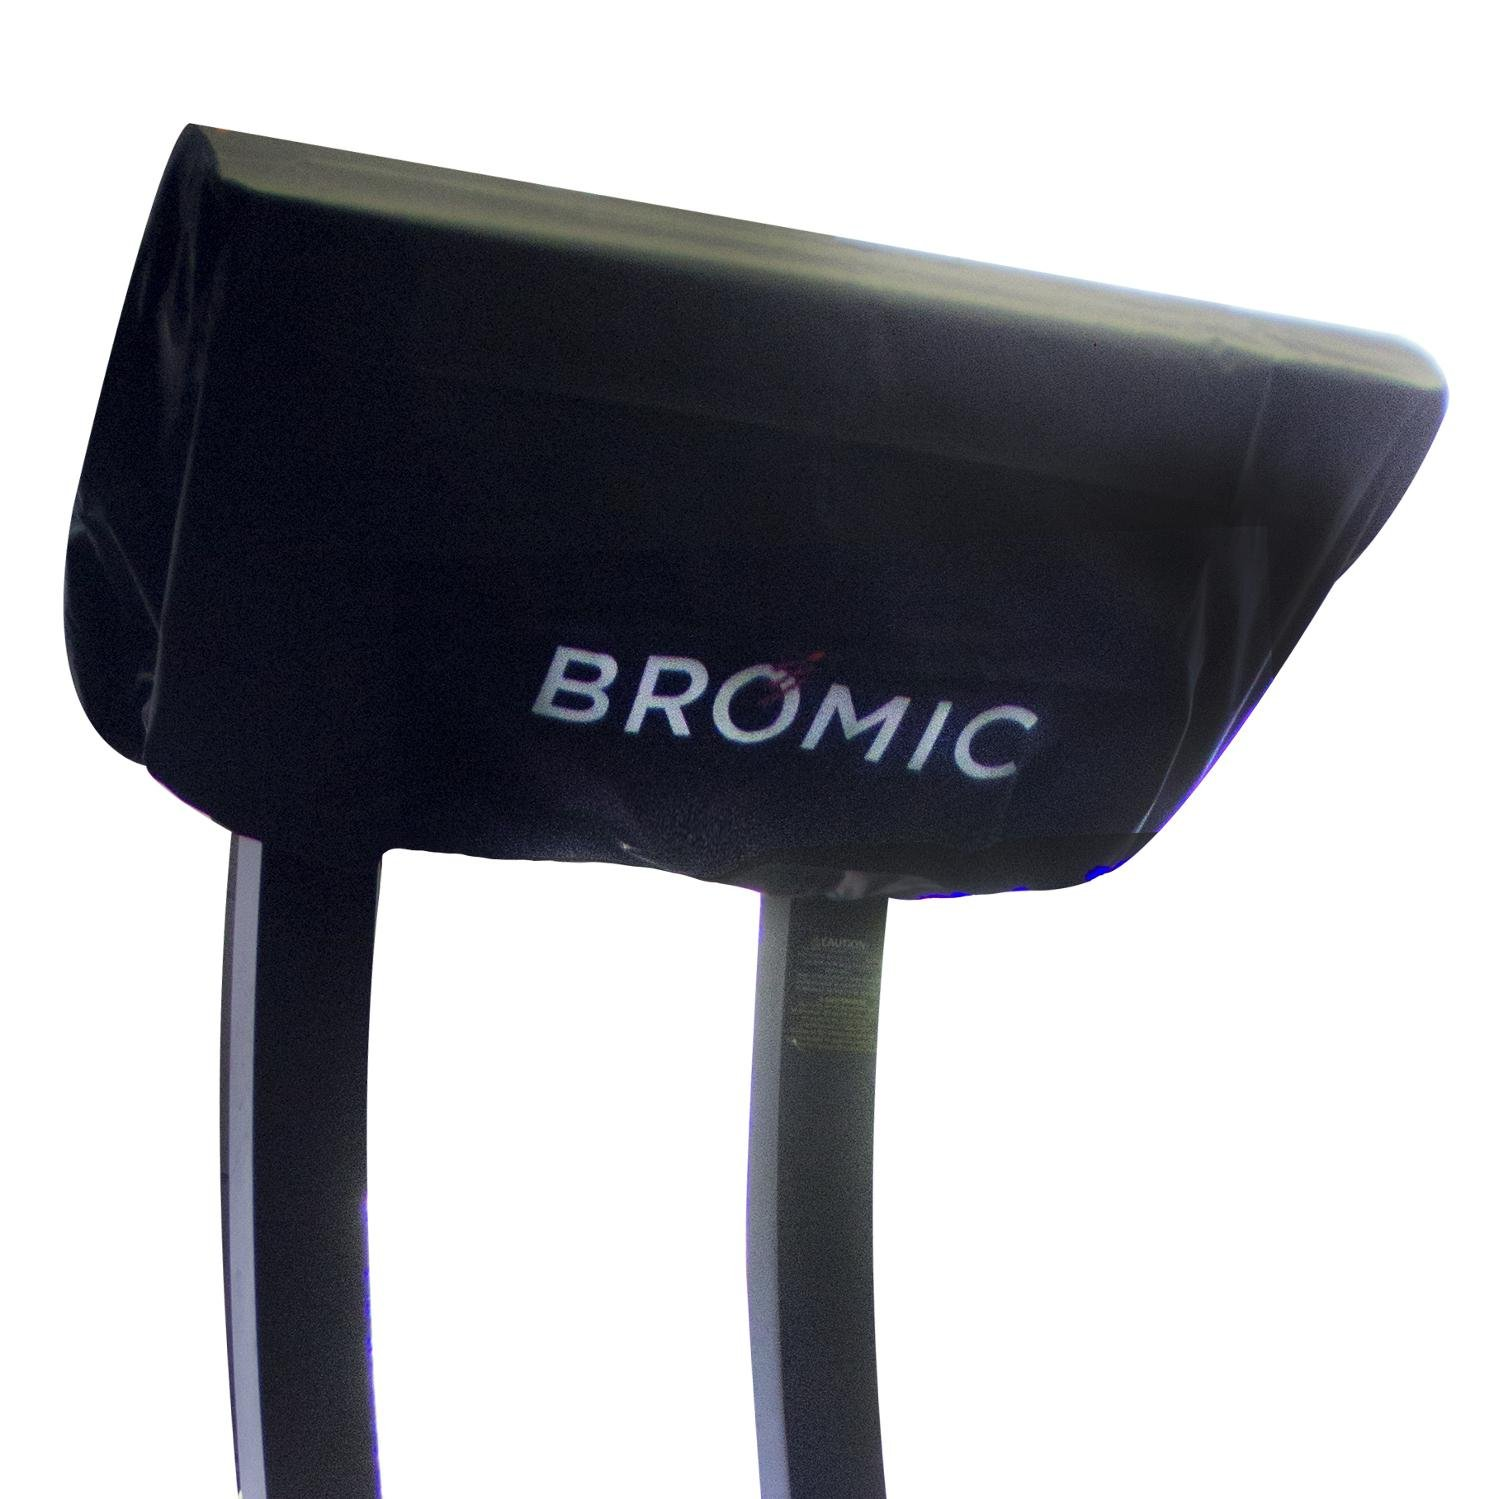 Bromic Heating Tungsten Portable Patio Heater Cover - Bh3030010 by Bromic Heating